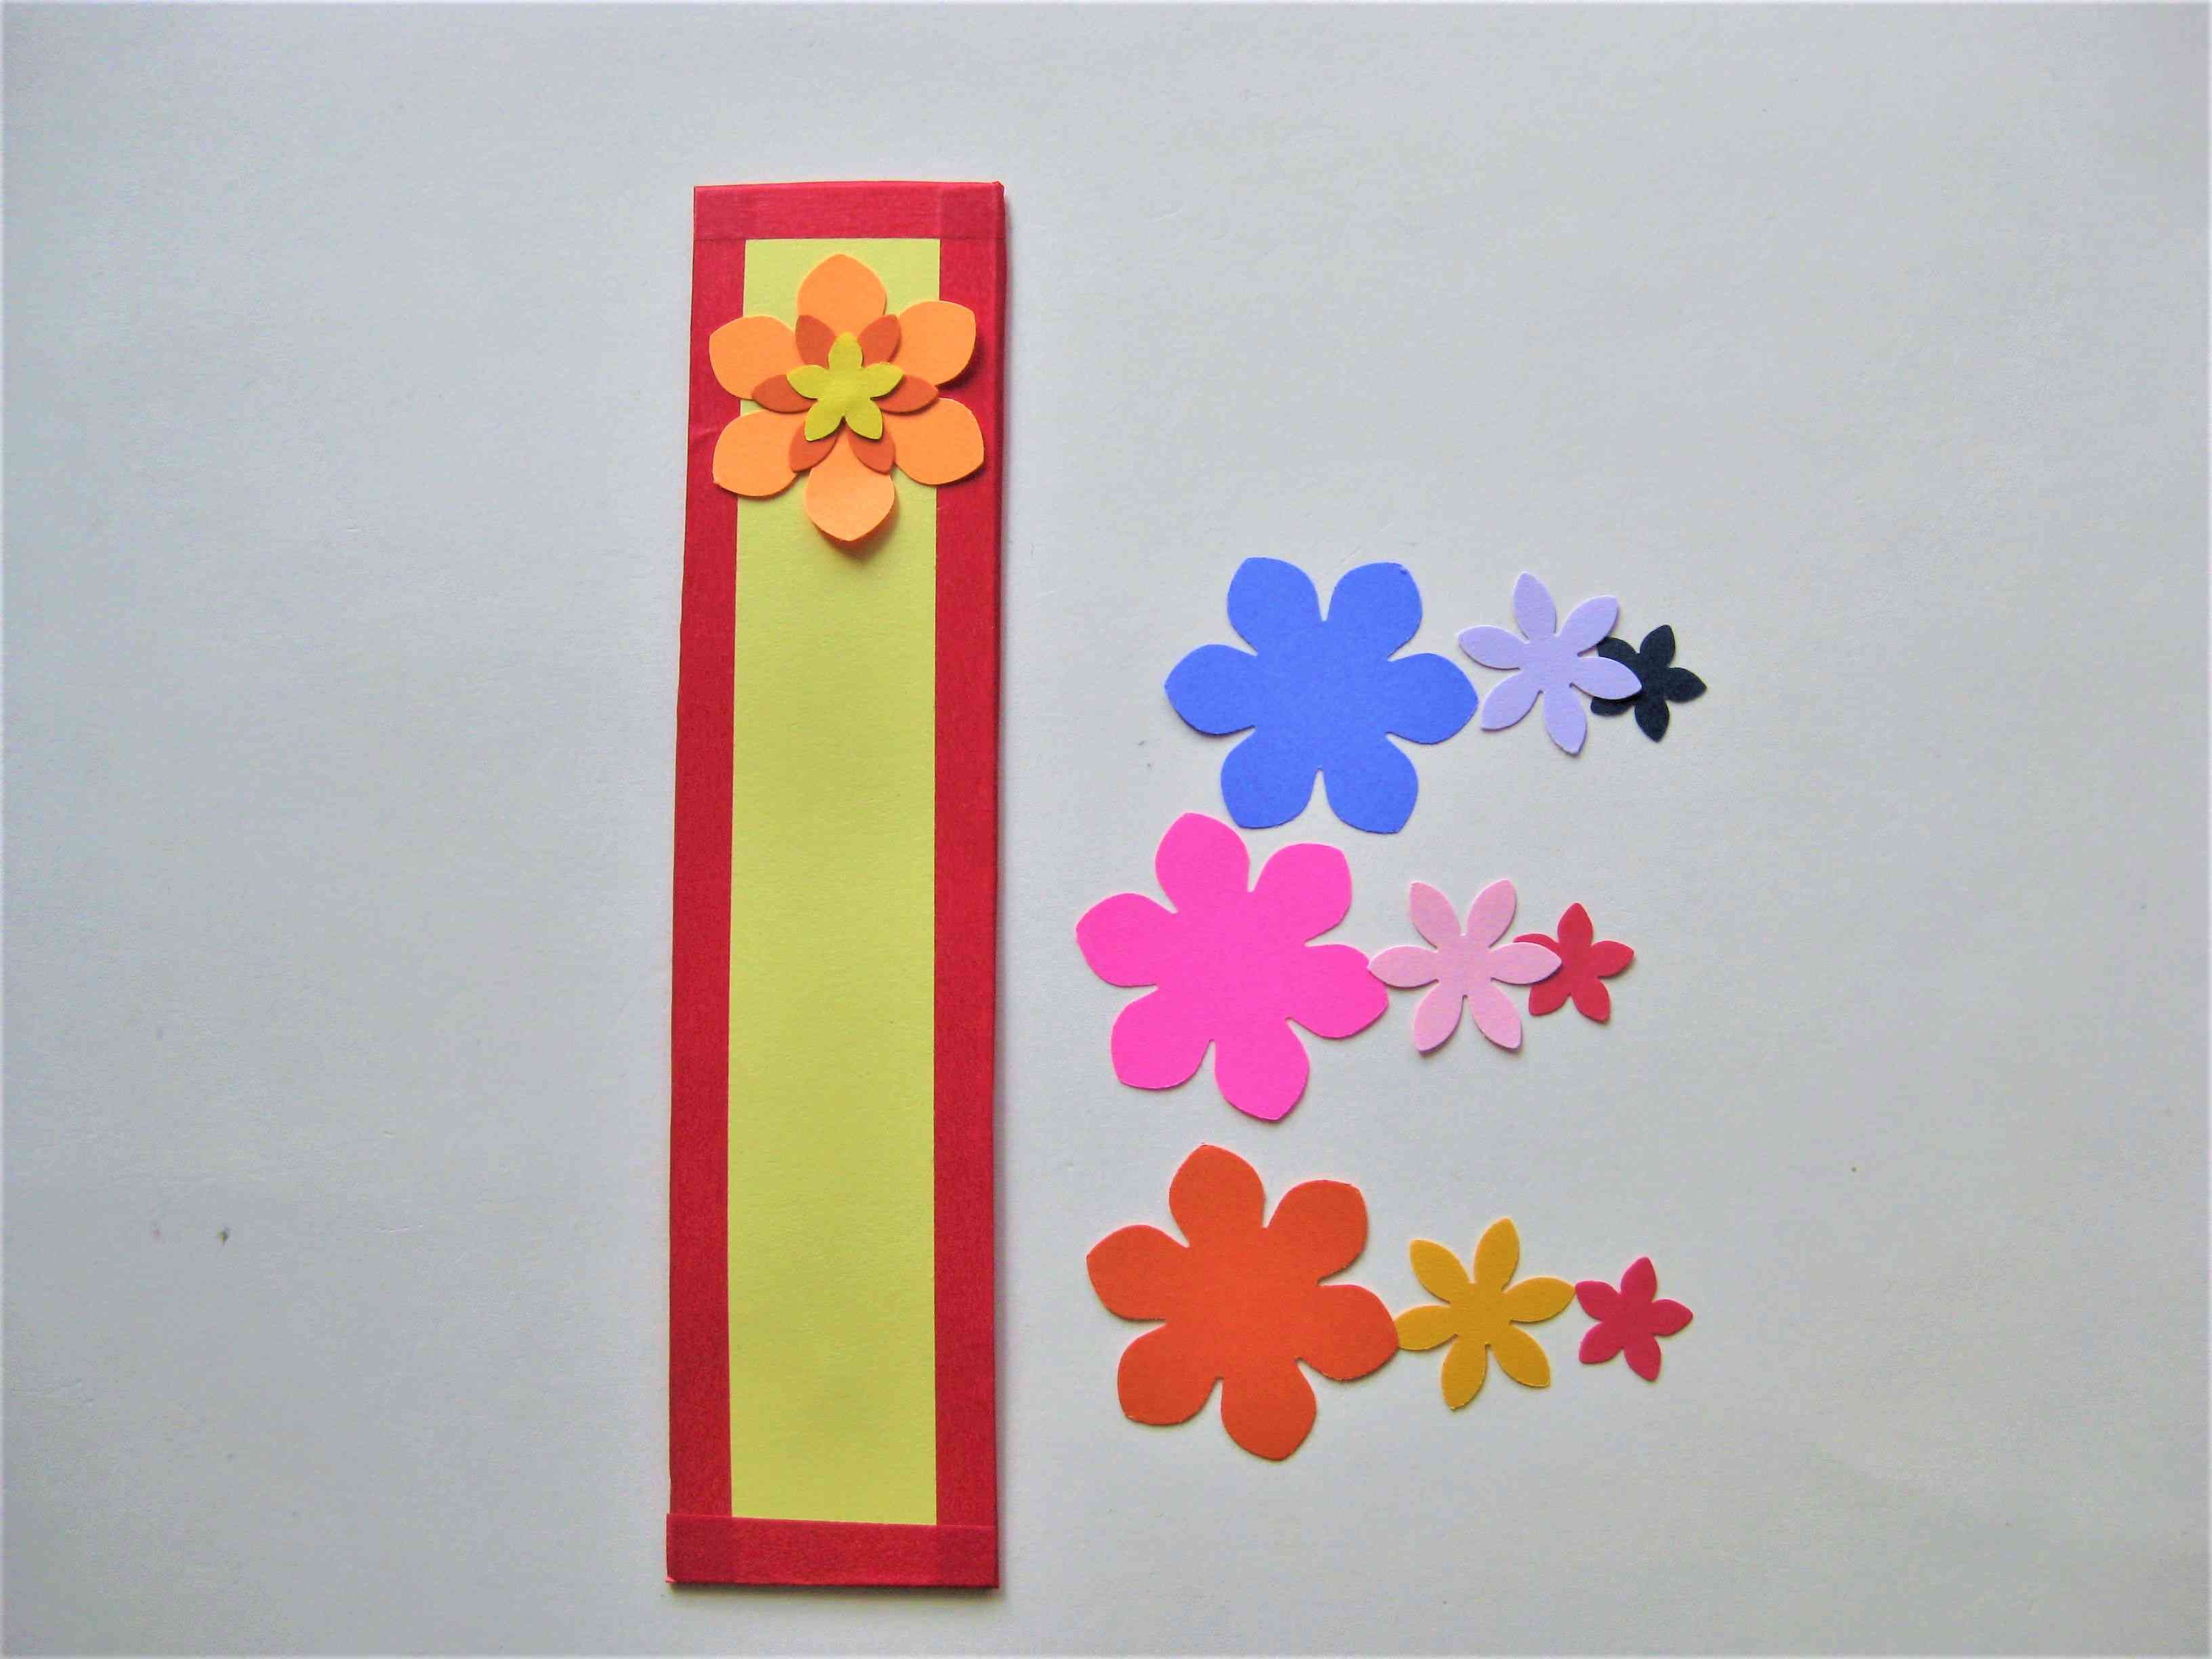 3 Ways to Make Paper Bookmarks - wikiHow | 2448x3264